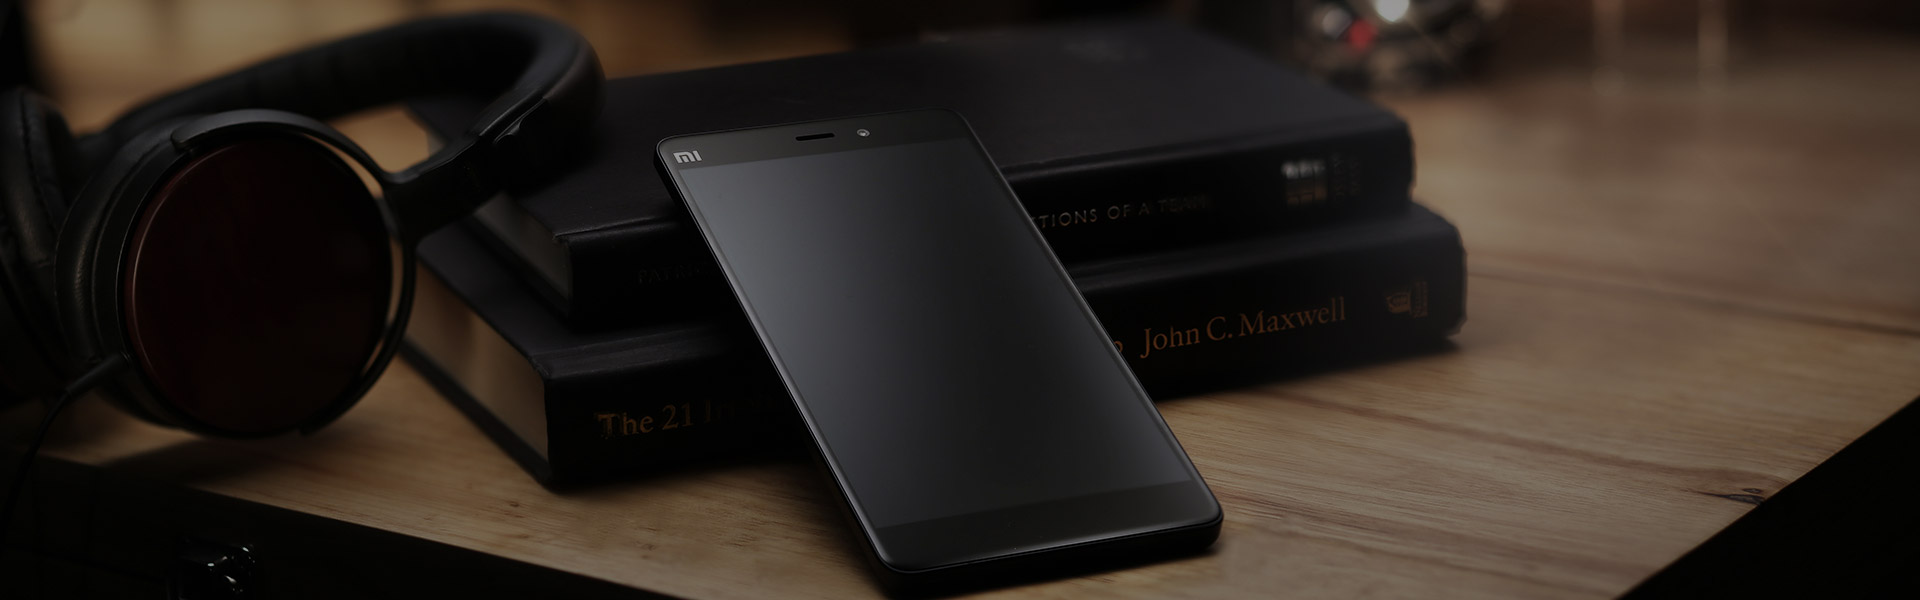 Xiaomi Mi Note Review: Xiaomi's latest flagship dazzles with quality design